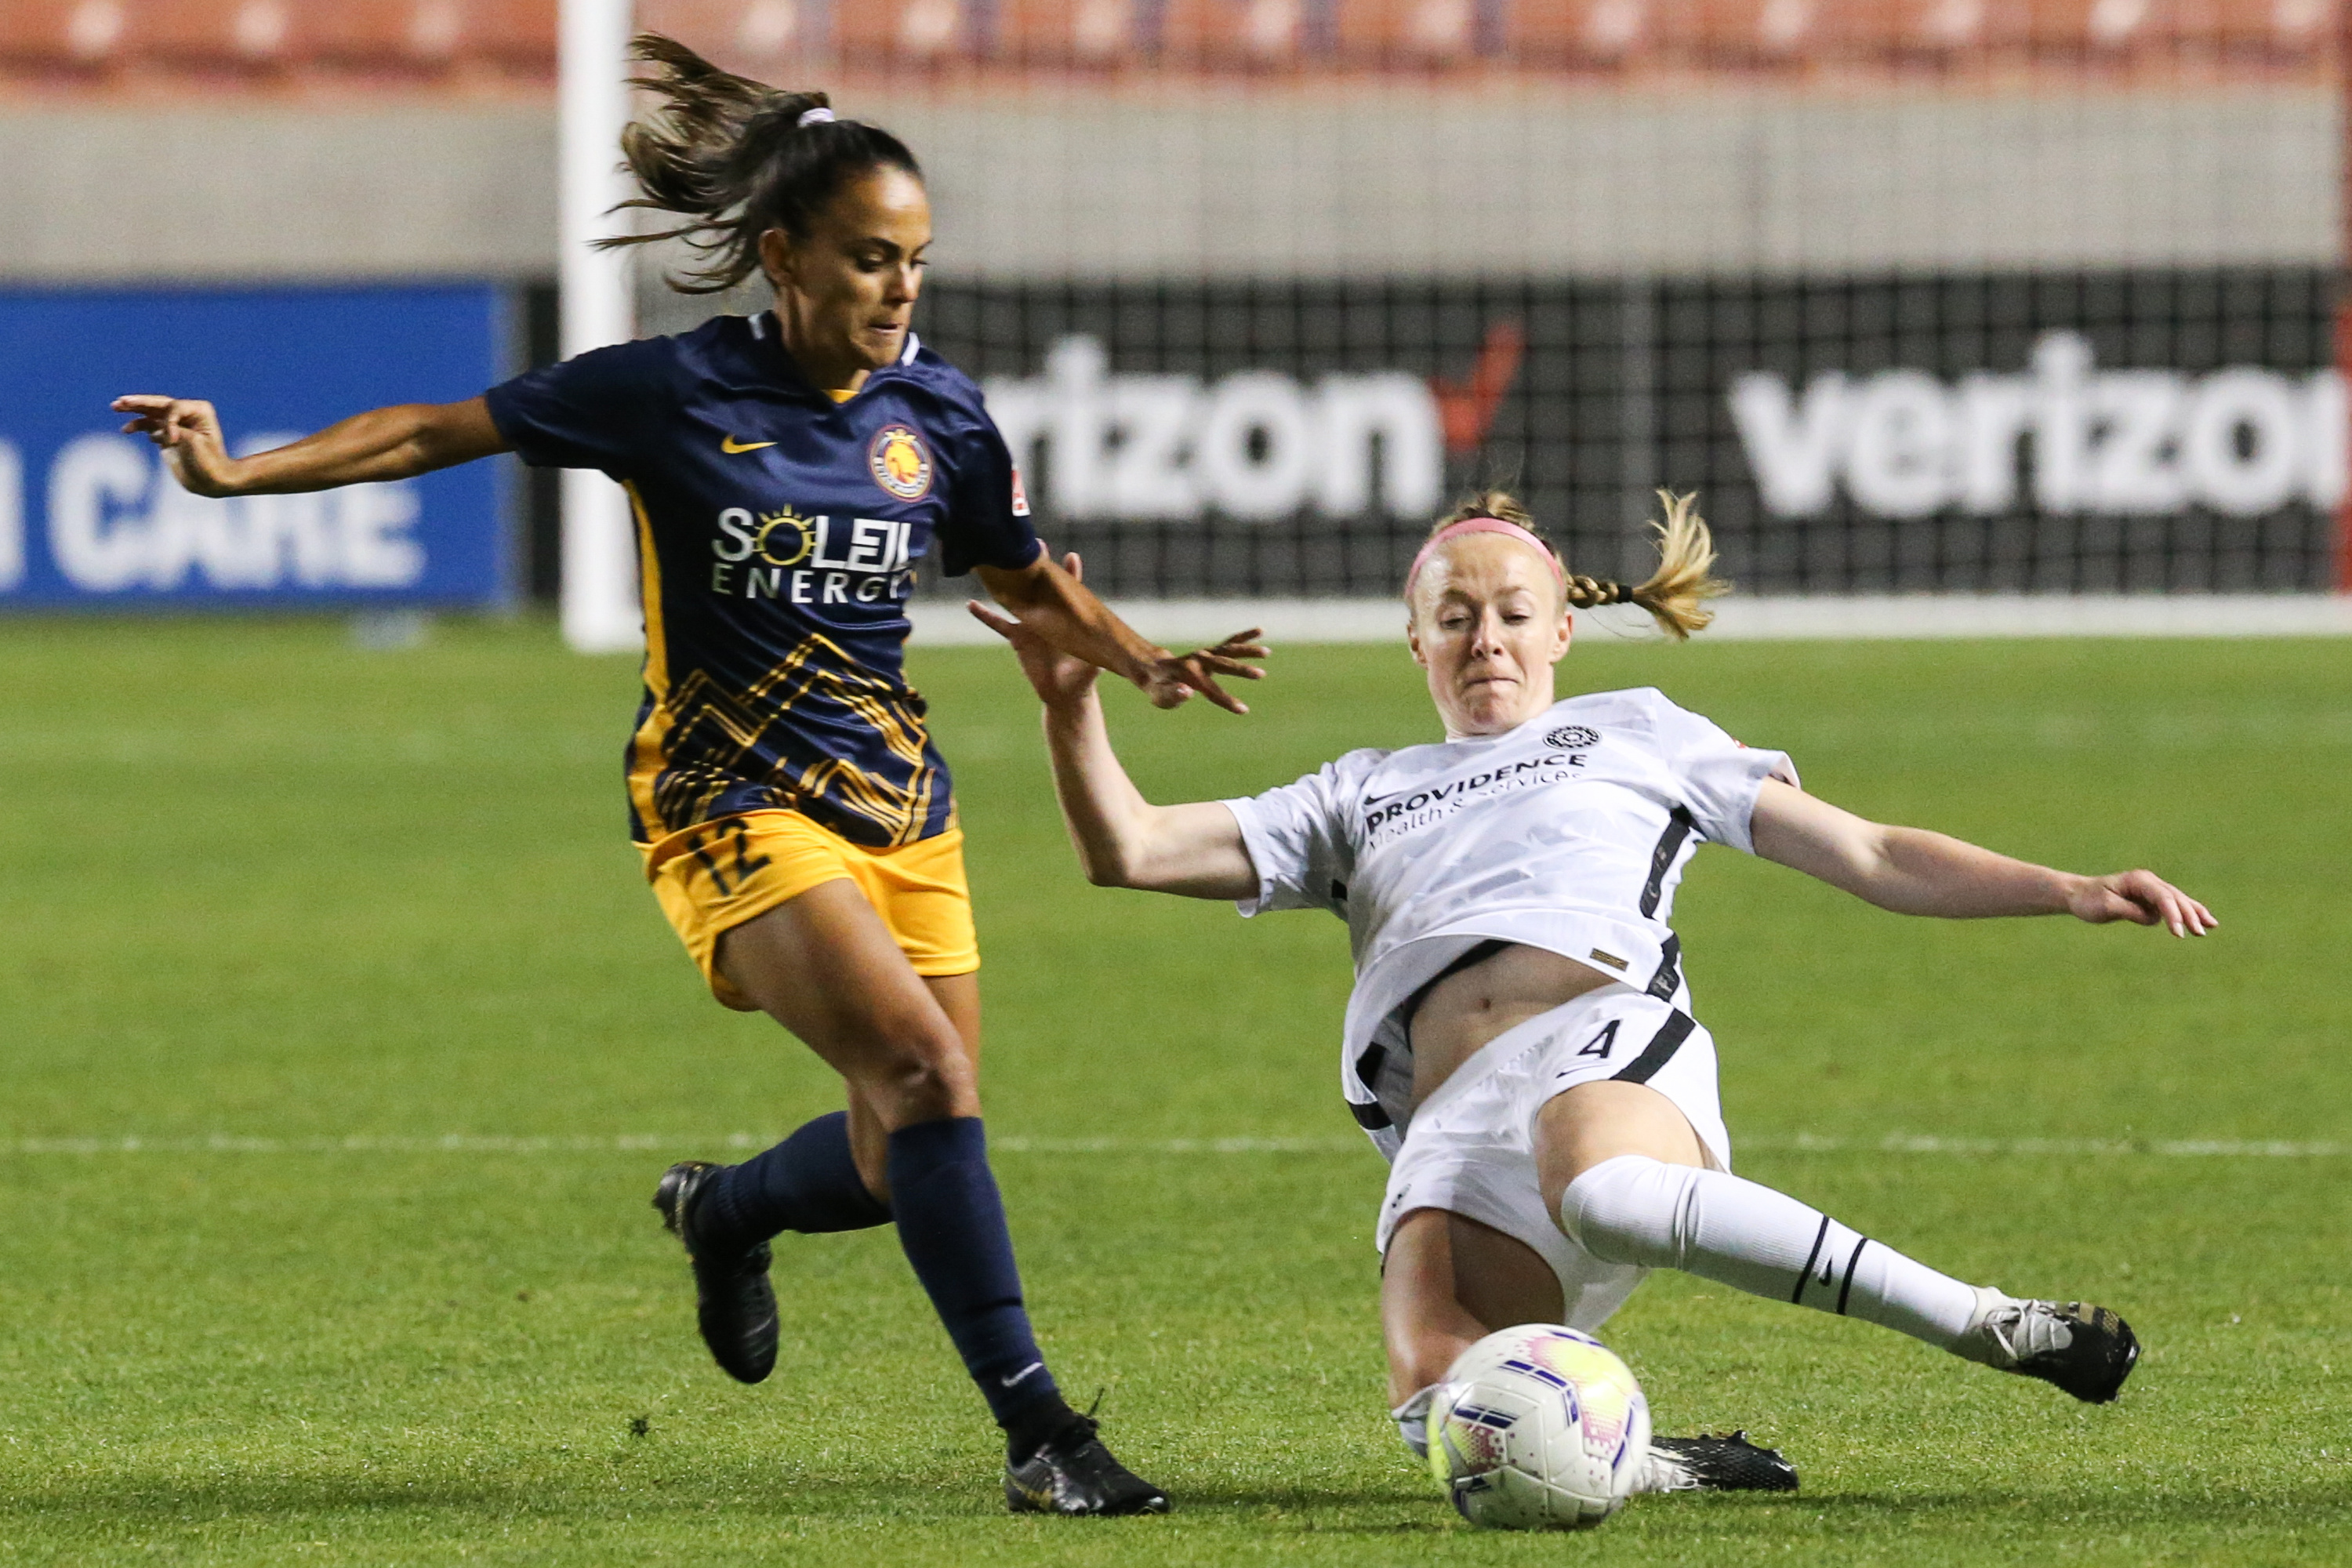 Portland Thorns FC defender Emily Menges (4) makes a slide tackle against Utah Royals FC midfielder Taylor Lytle (12) during an NWSL soccer game at Rio Tinto Stadium in Sandy on Saturday, Oct. 3, 2020.